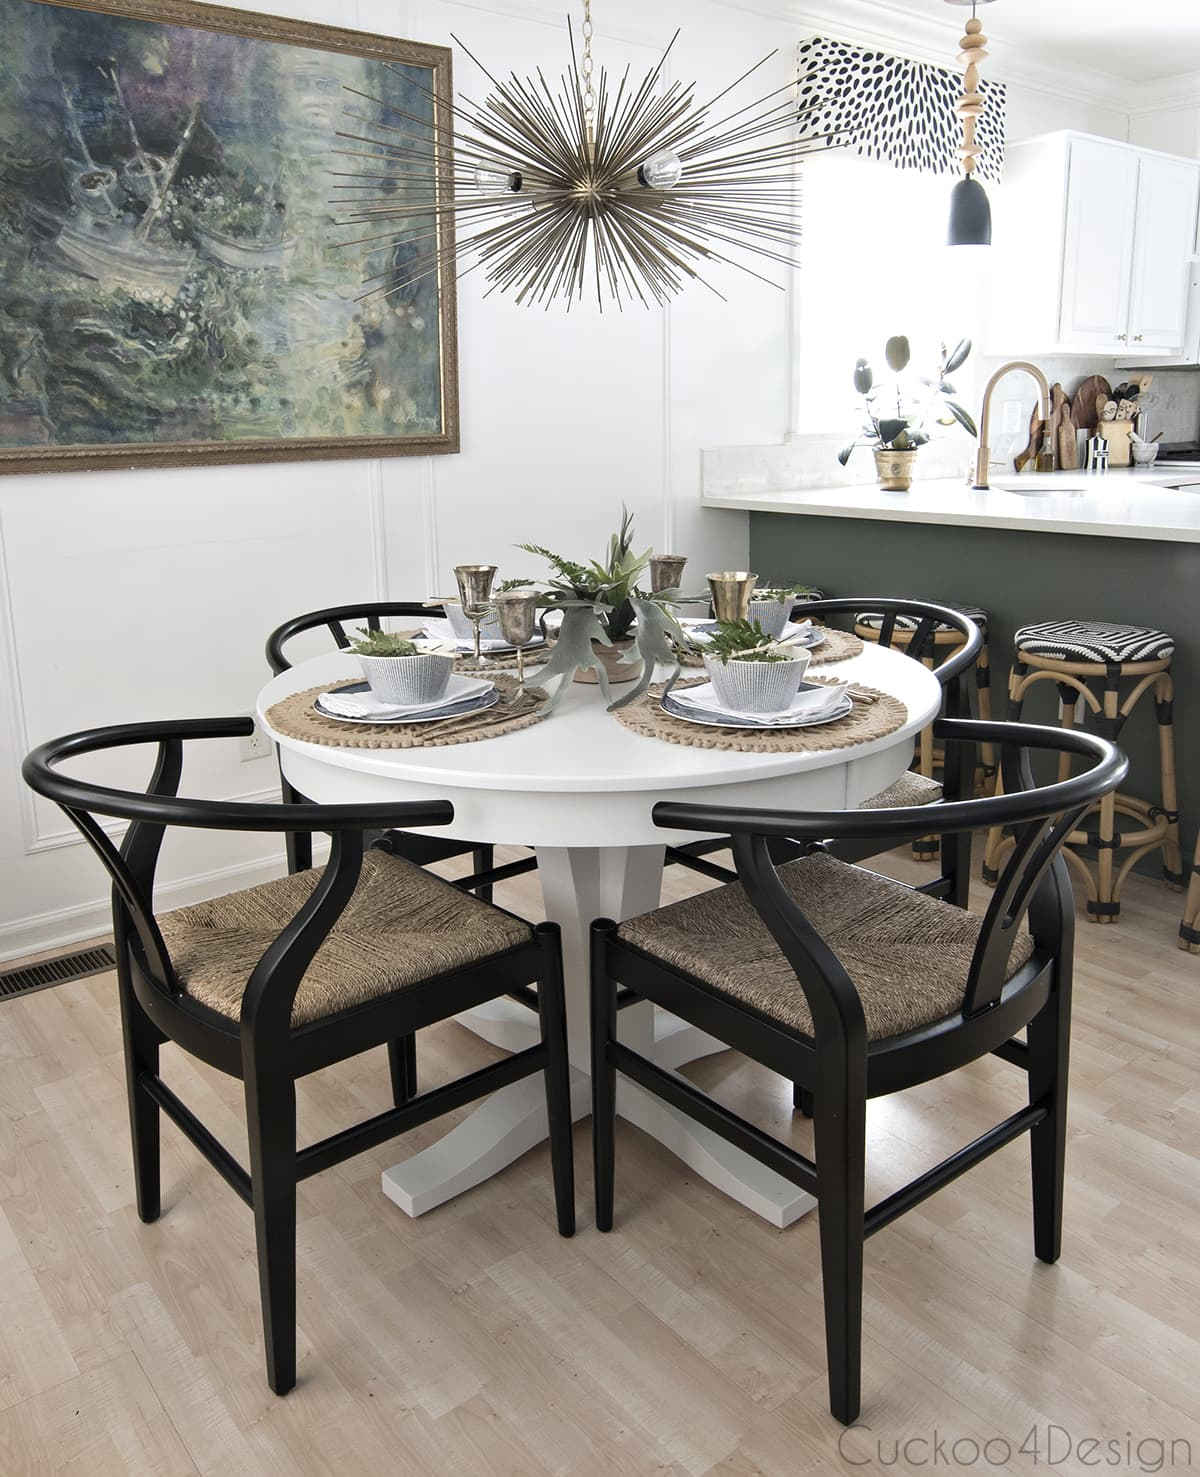 wishbone chairs around white pedestal table